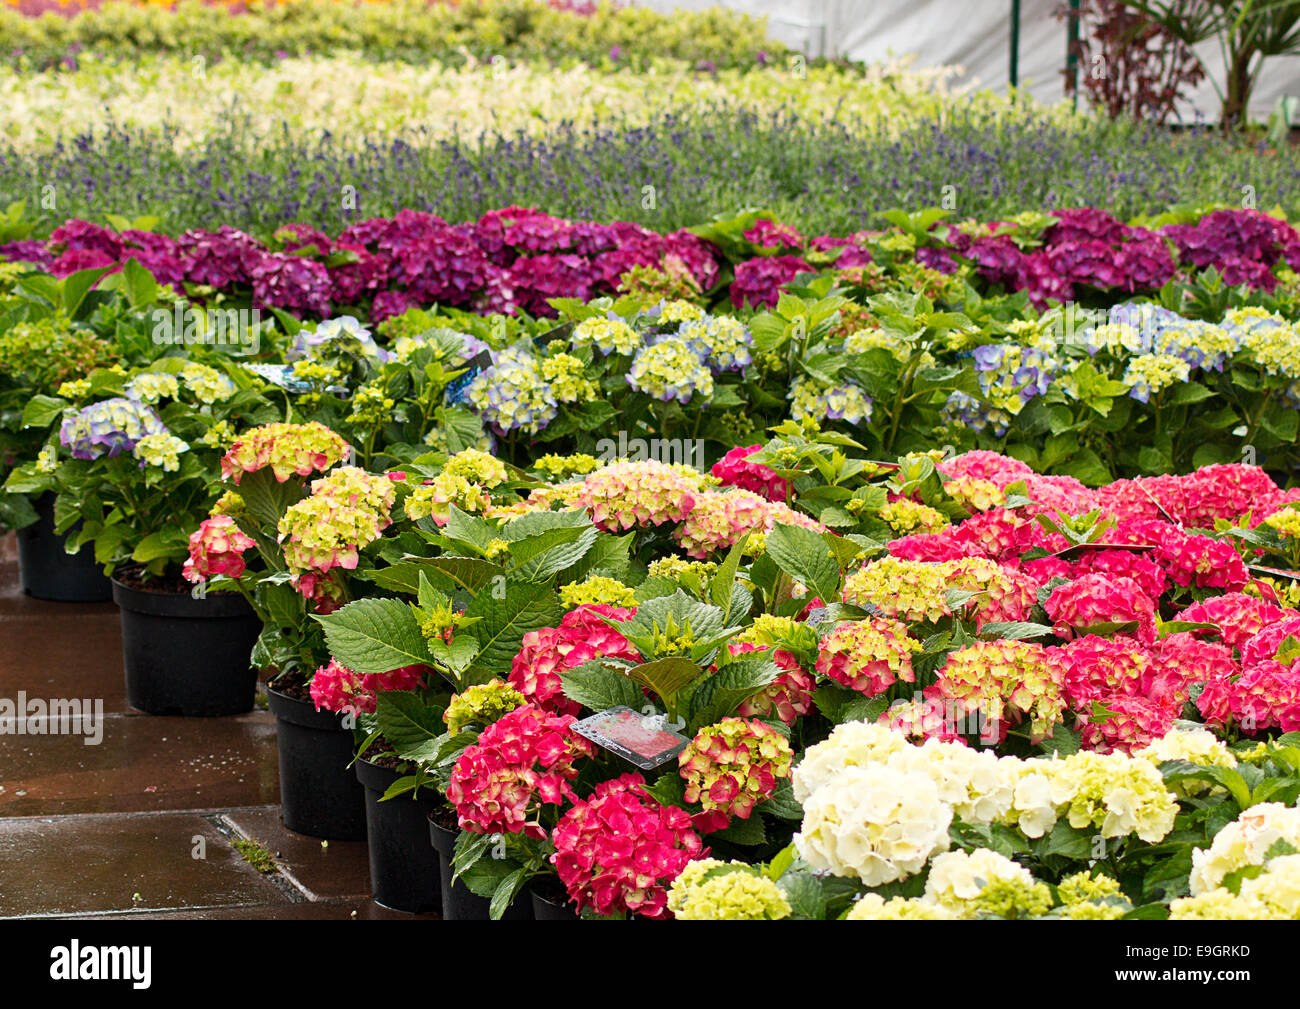 rows of flowers for sale at a retail garden center nursery or market stock photo royalty free